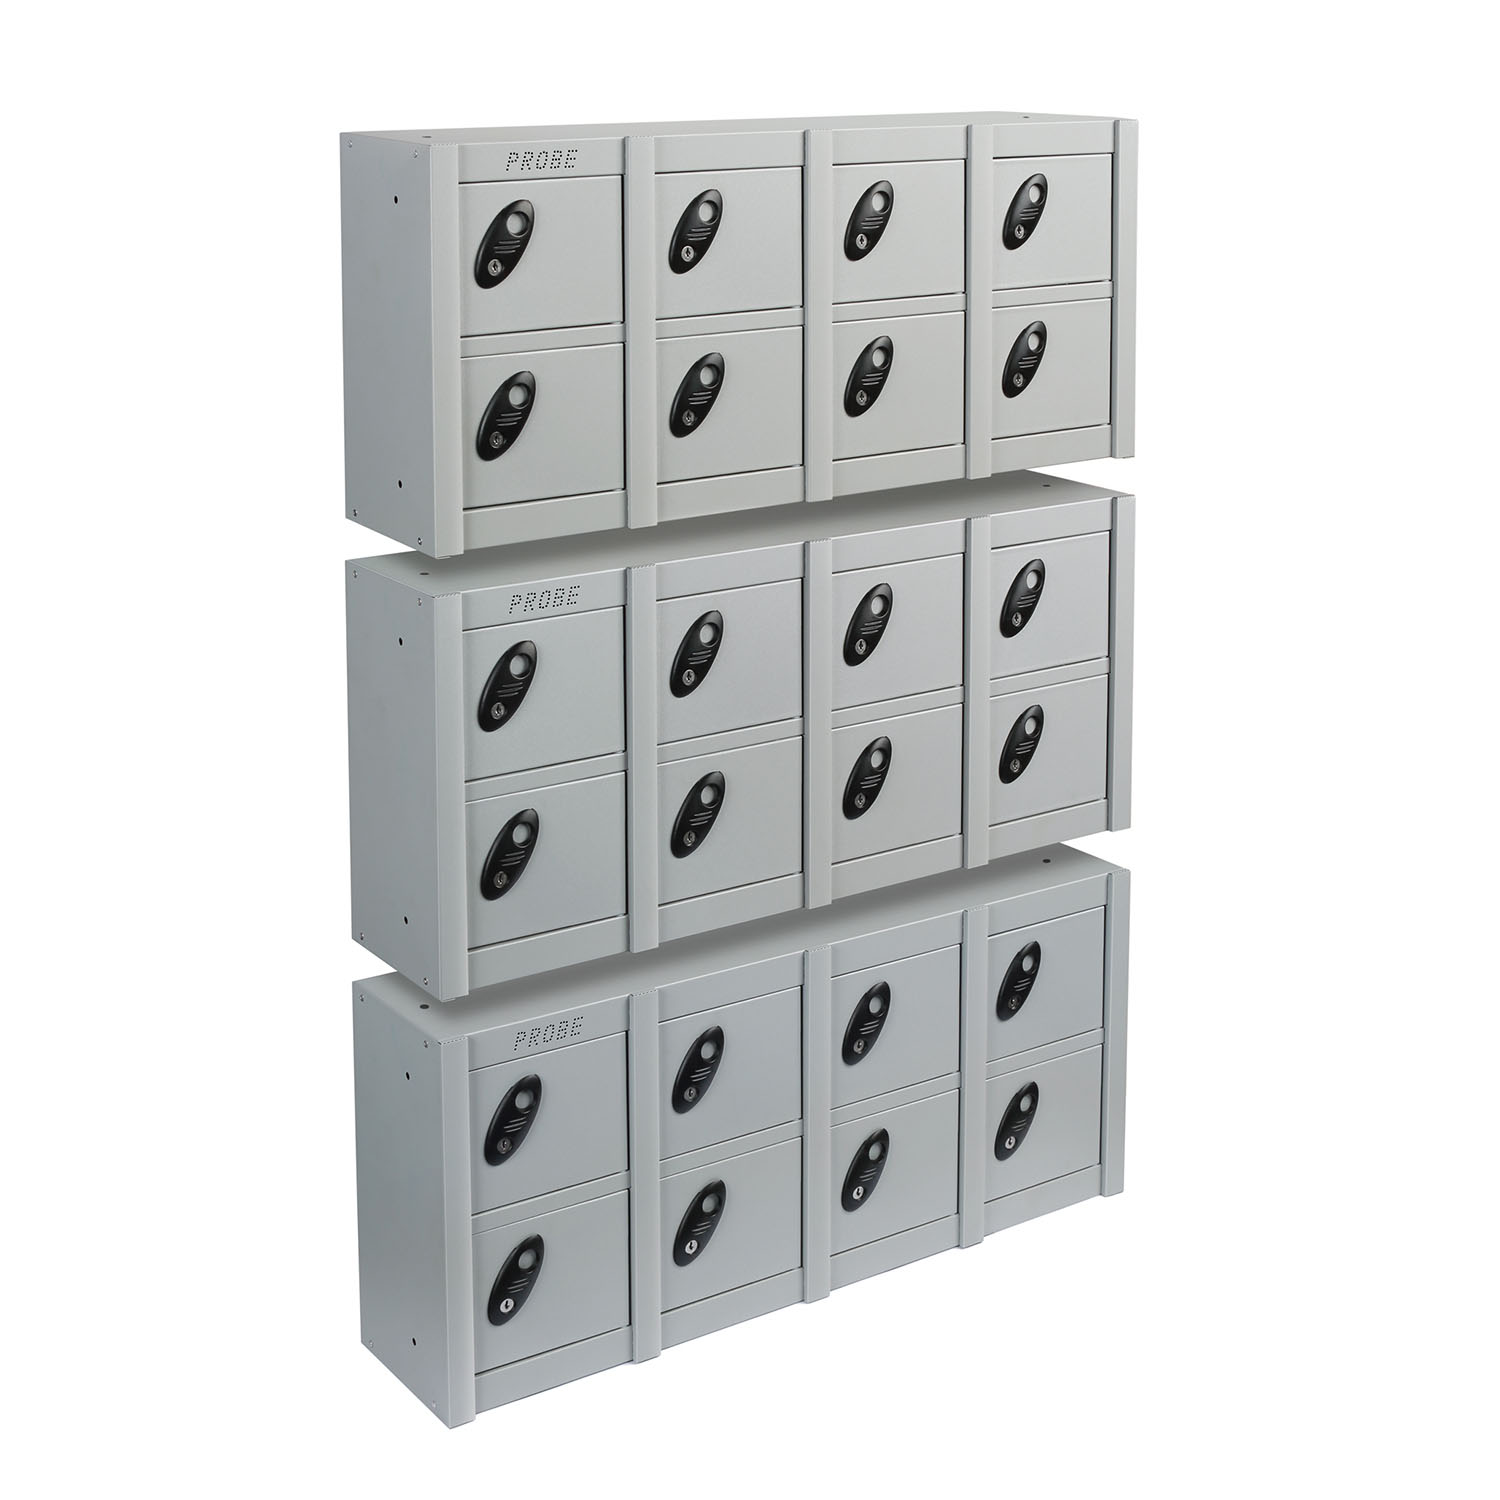 Probe 8 doors minibox wall mounted lockers in silver colour